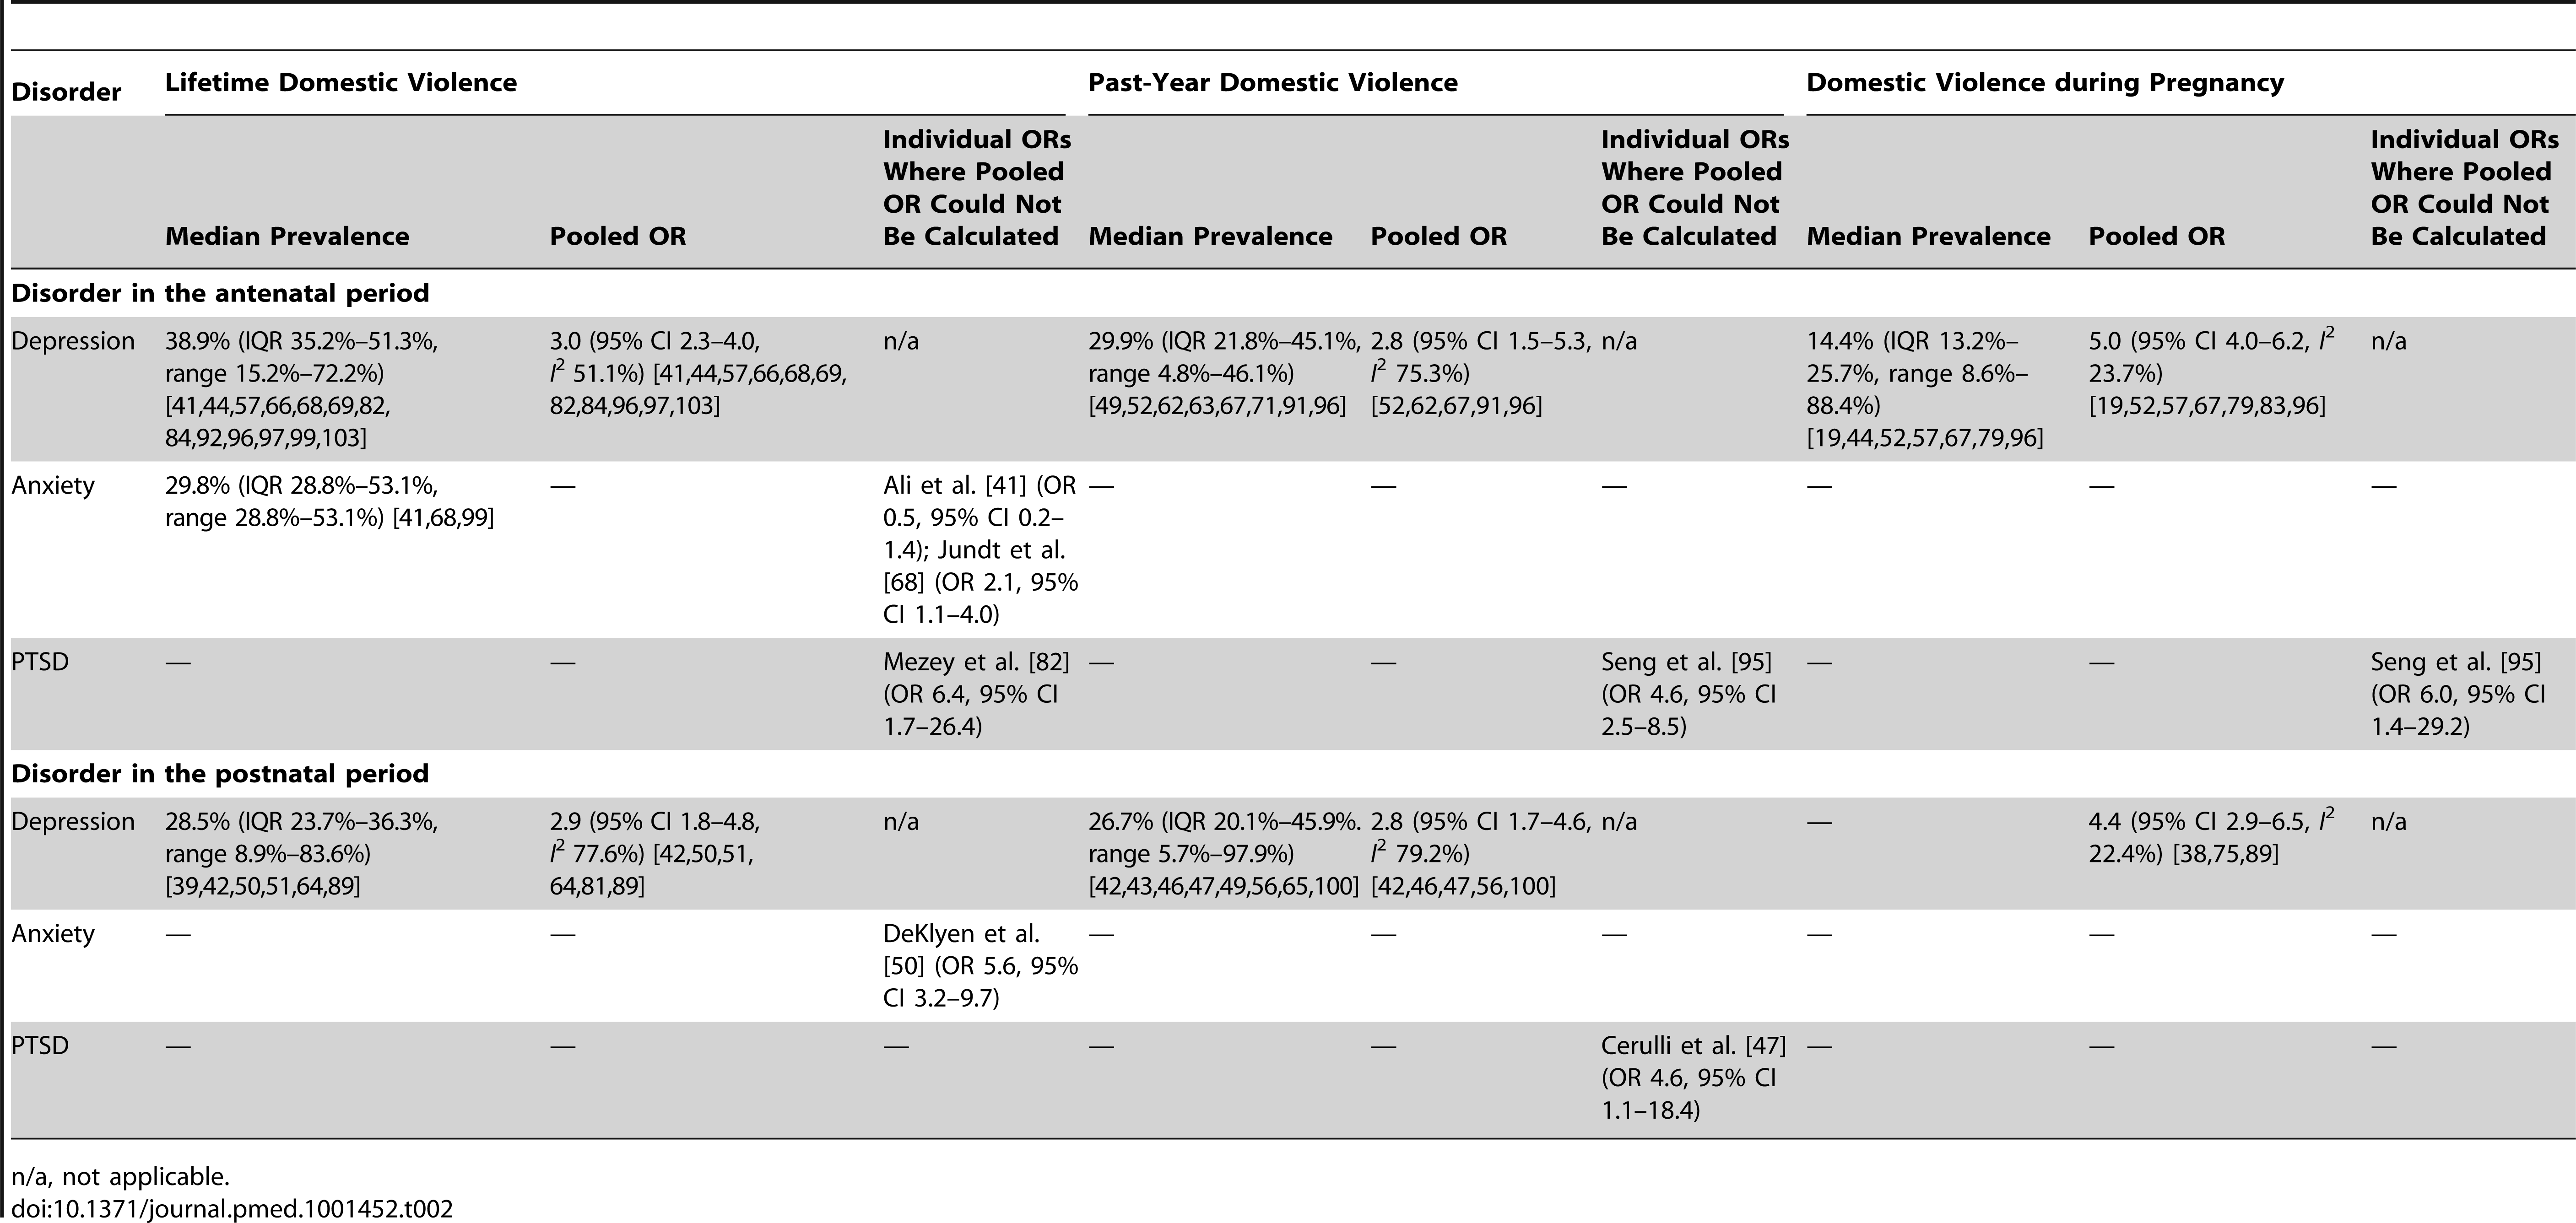 Summary of findings from cross-sectional studies.